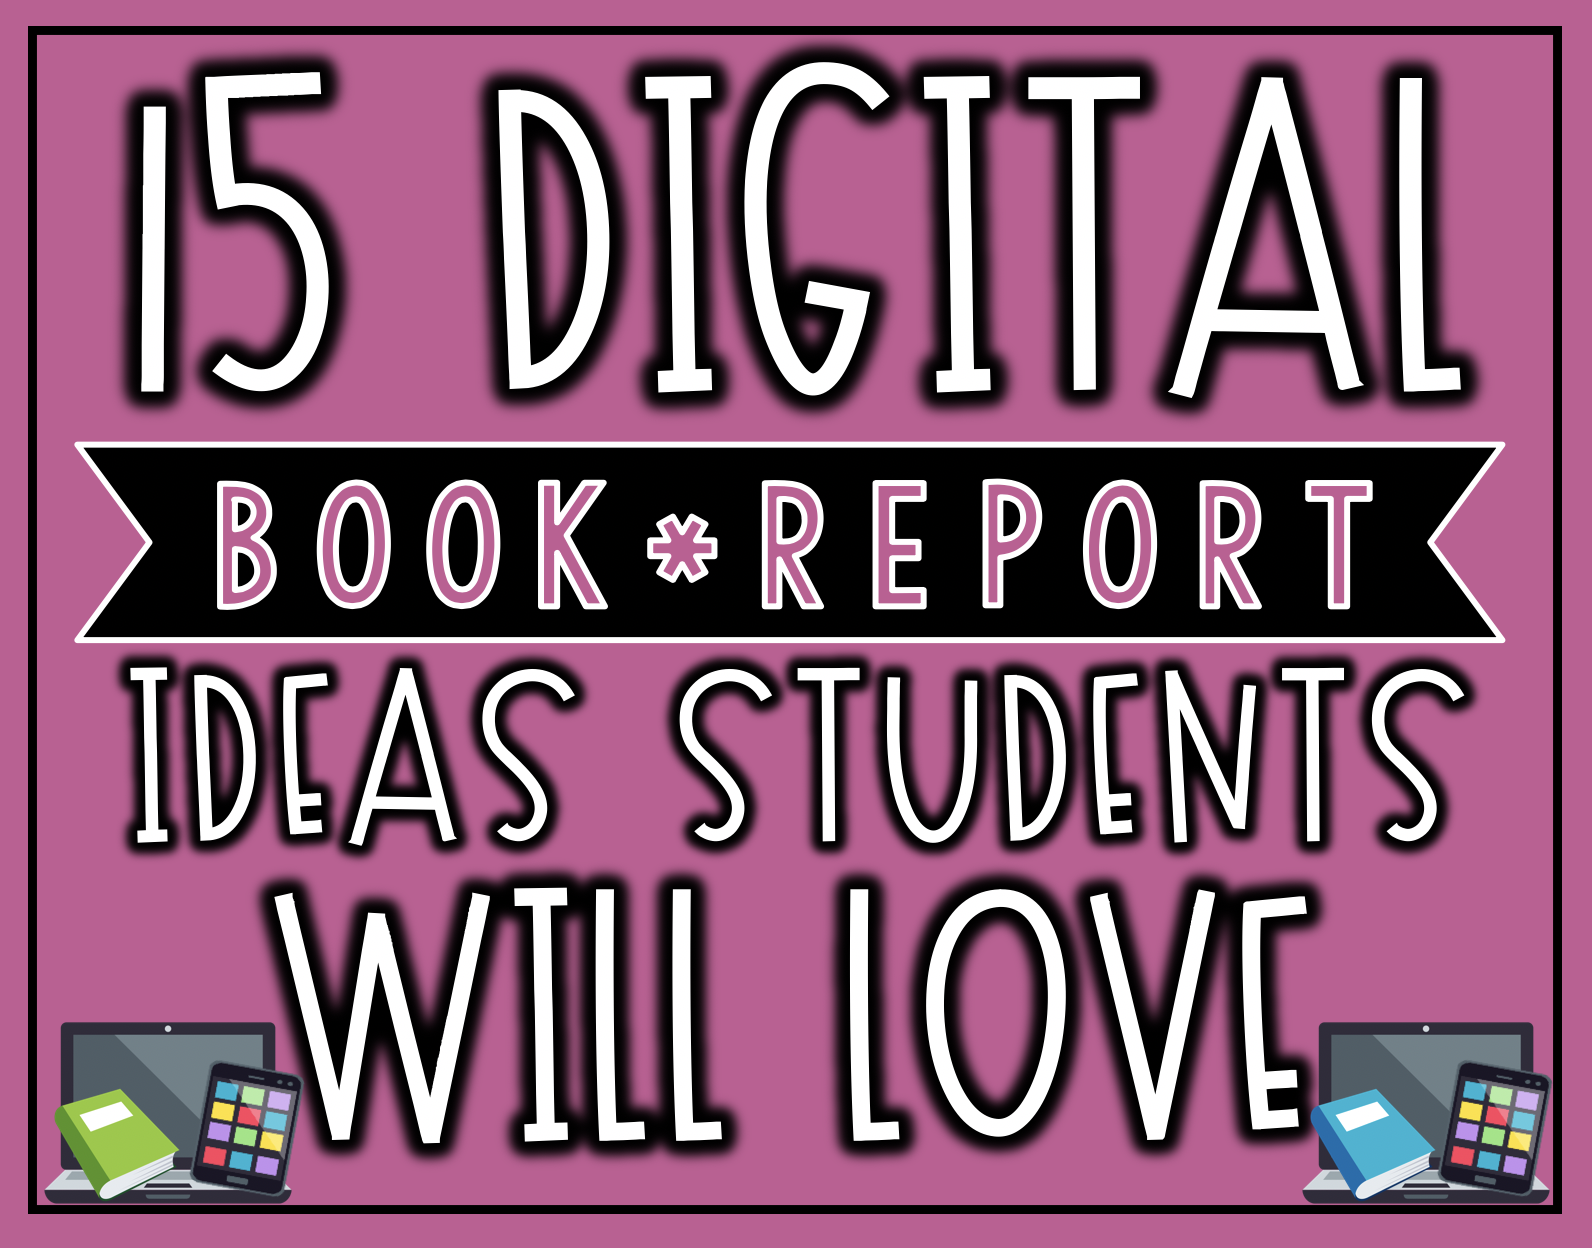 Jazz up traditional book reports with these 15 different DIGITAL book report ideas your students will love! There is a lot of opportunity for differentiation and reaching all kinds of learning styles with these activities.